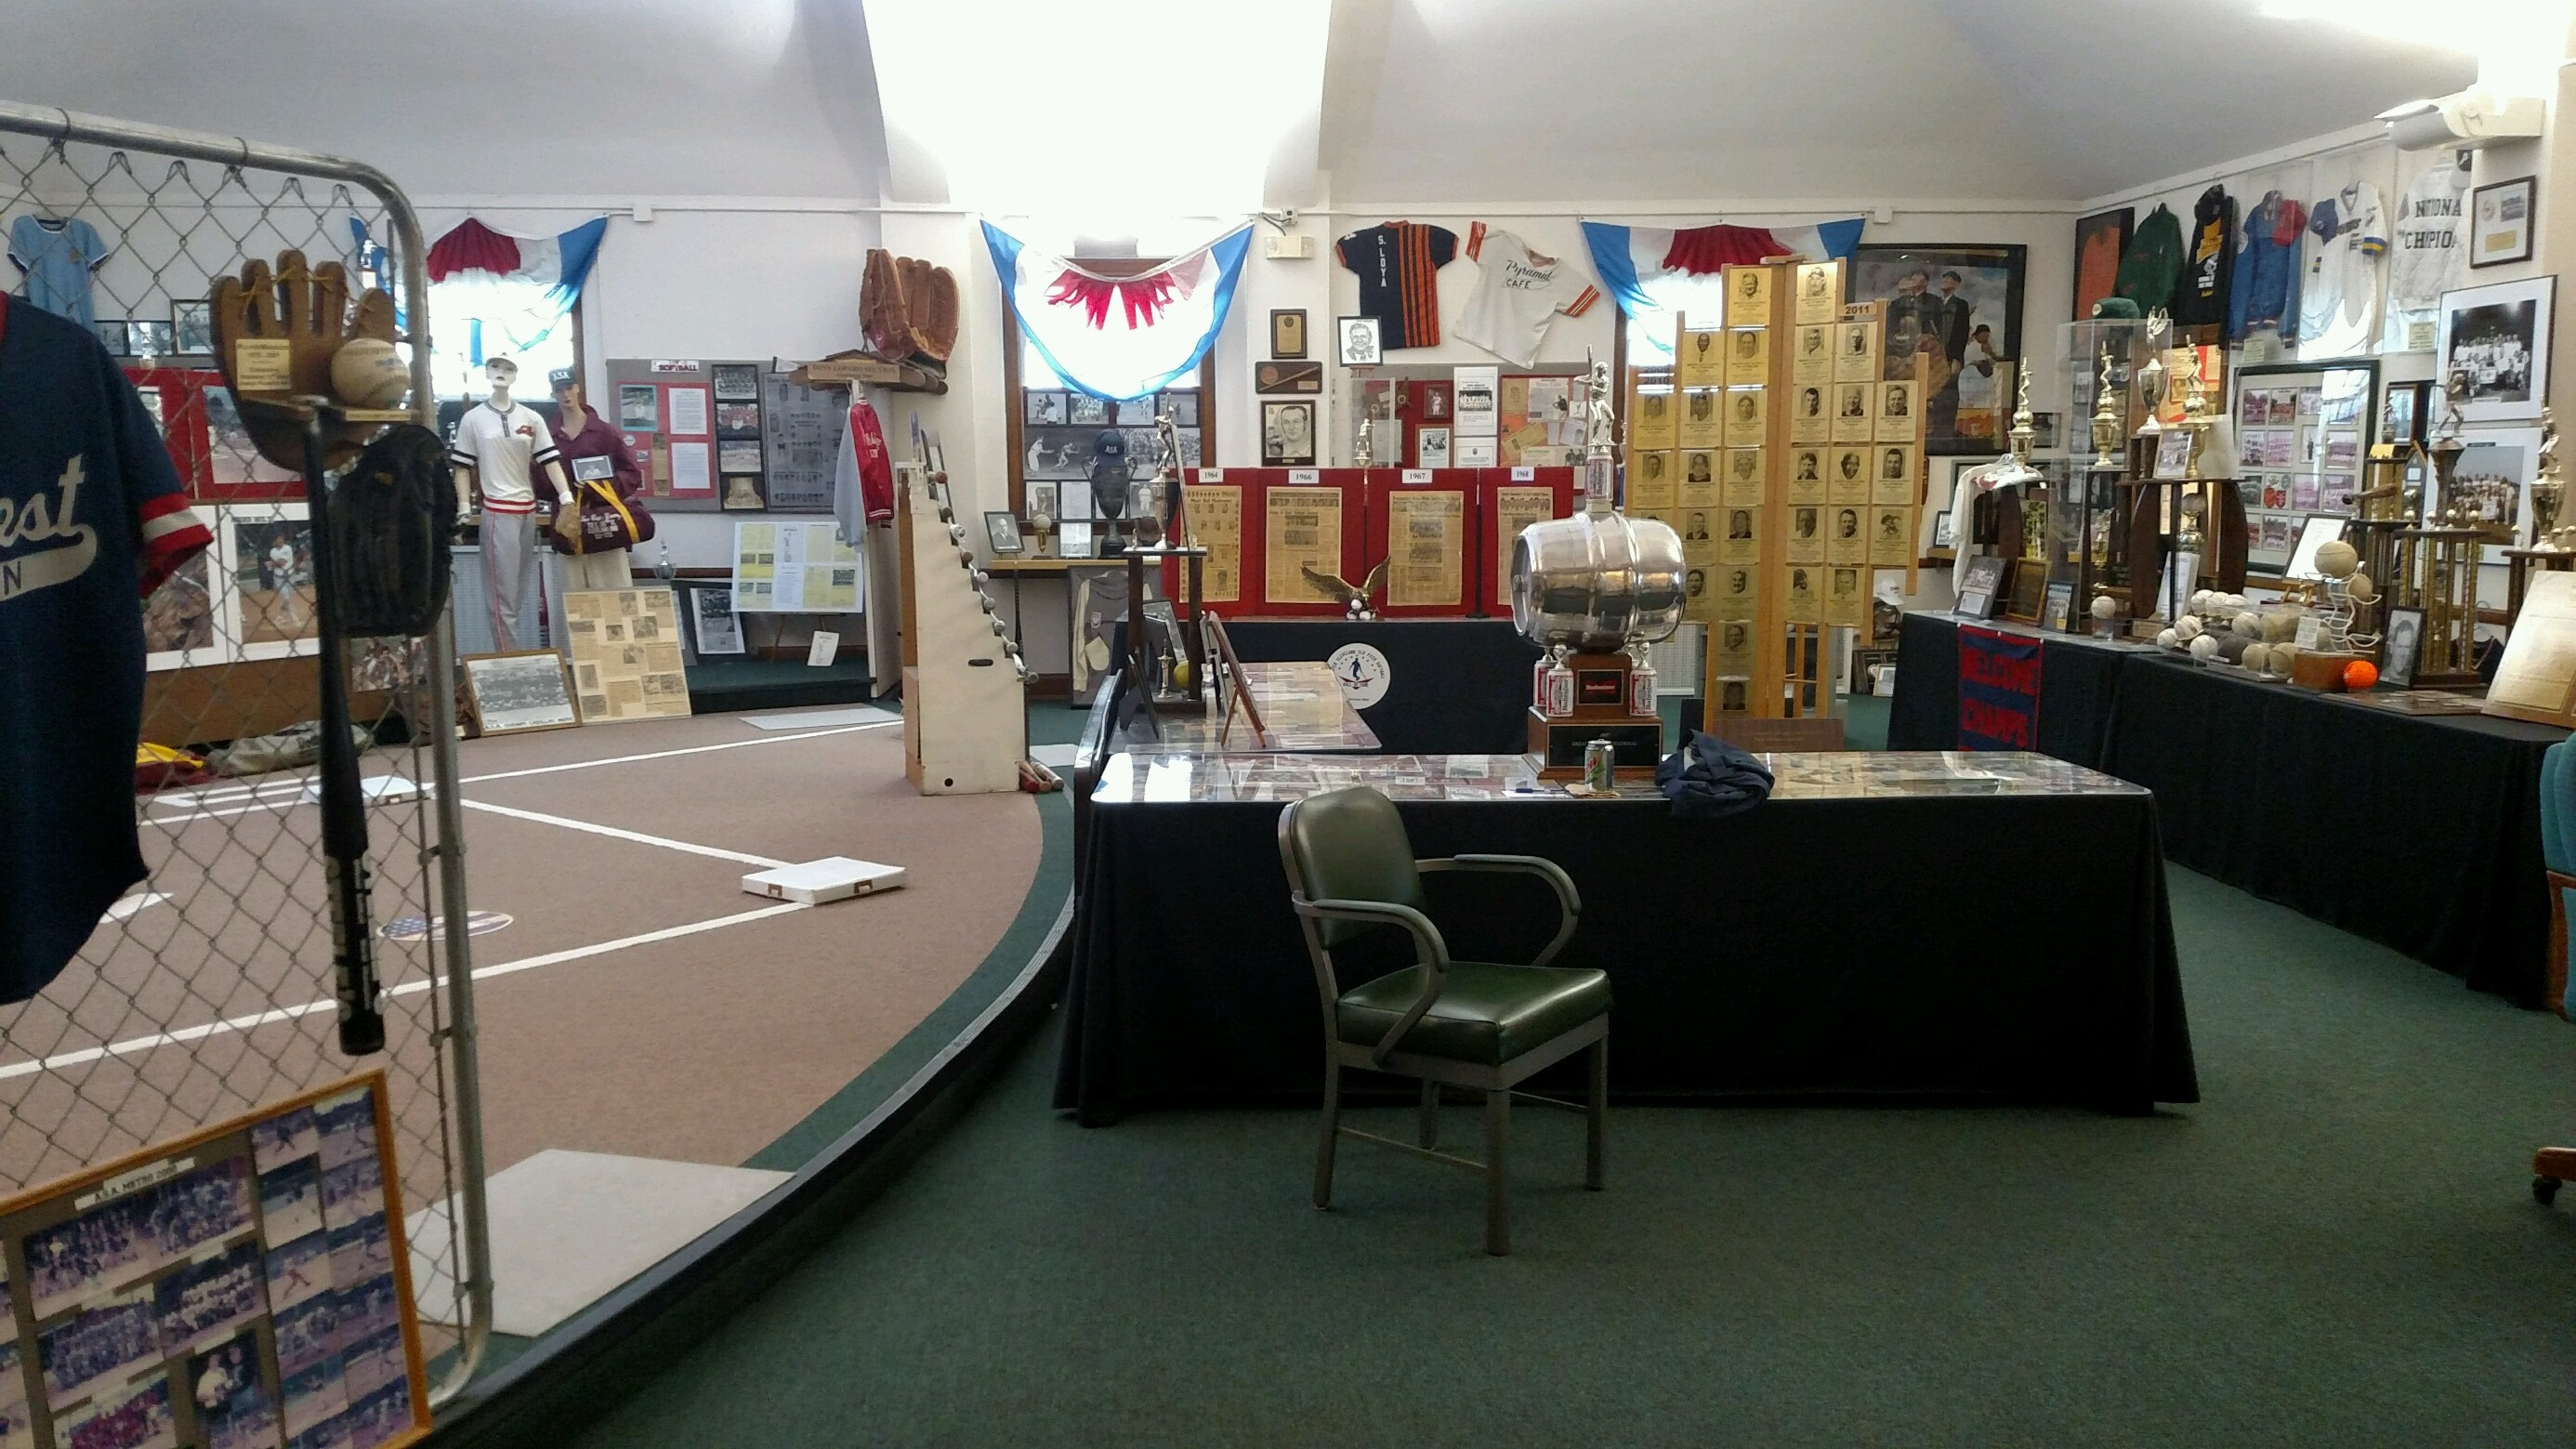 the main room at Slo-Pitch Softball Hall of Fame and Museum